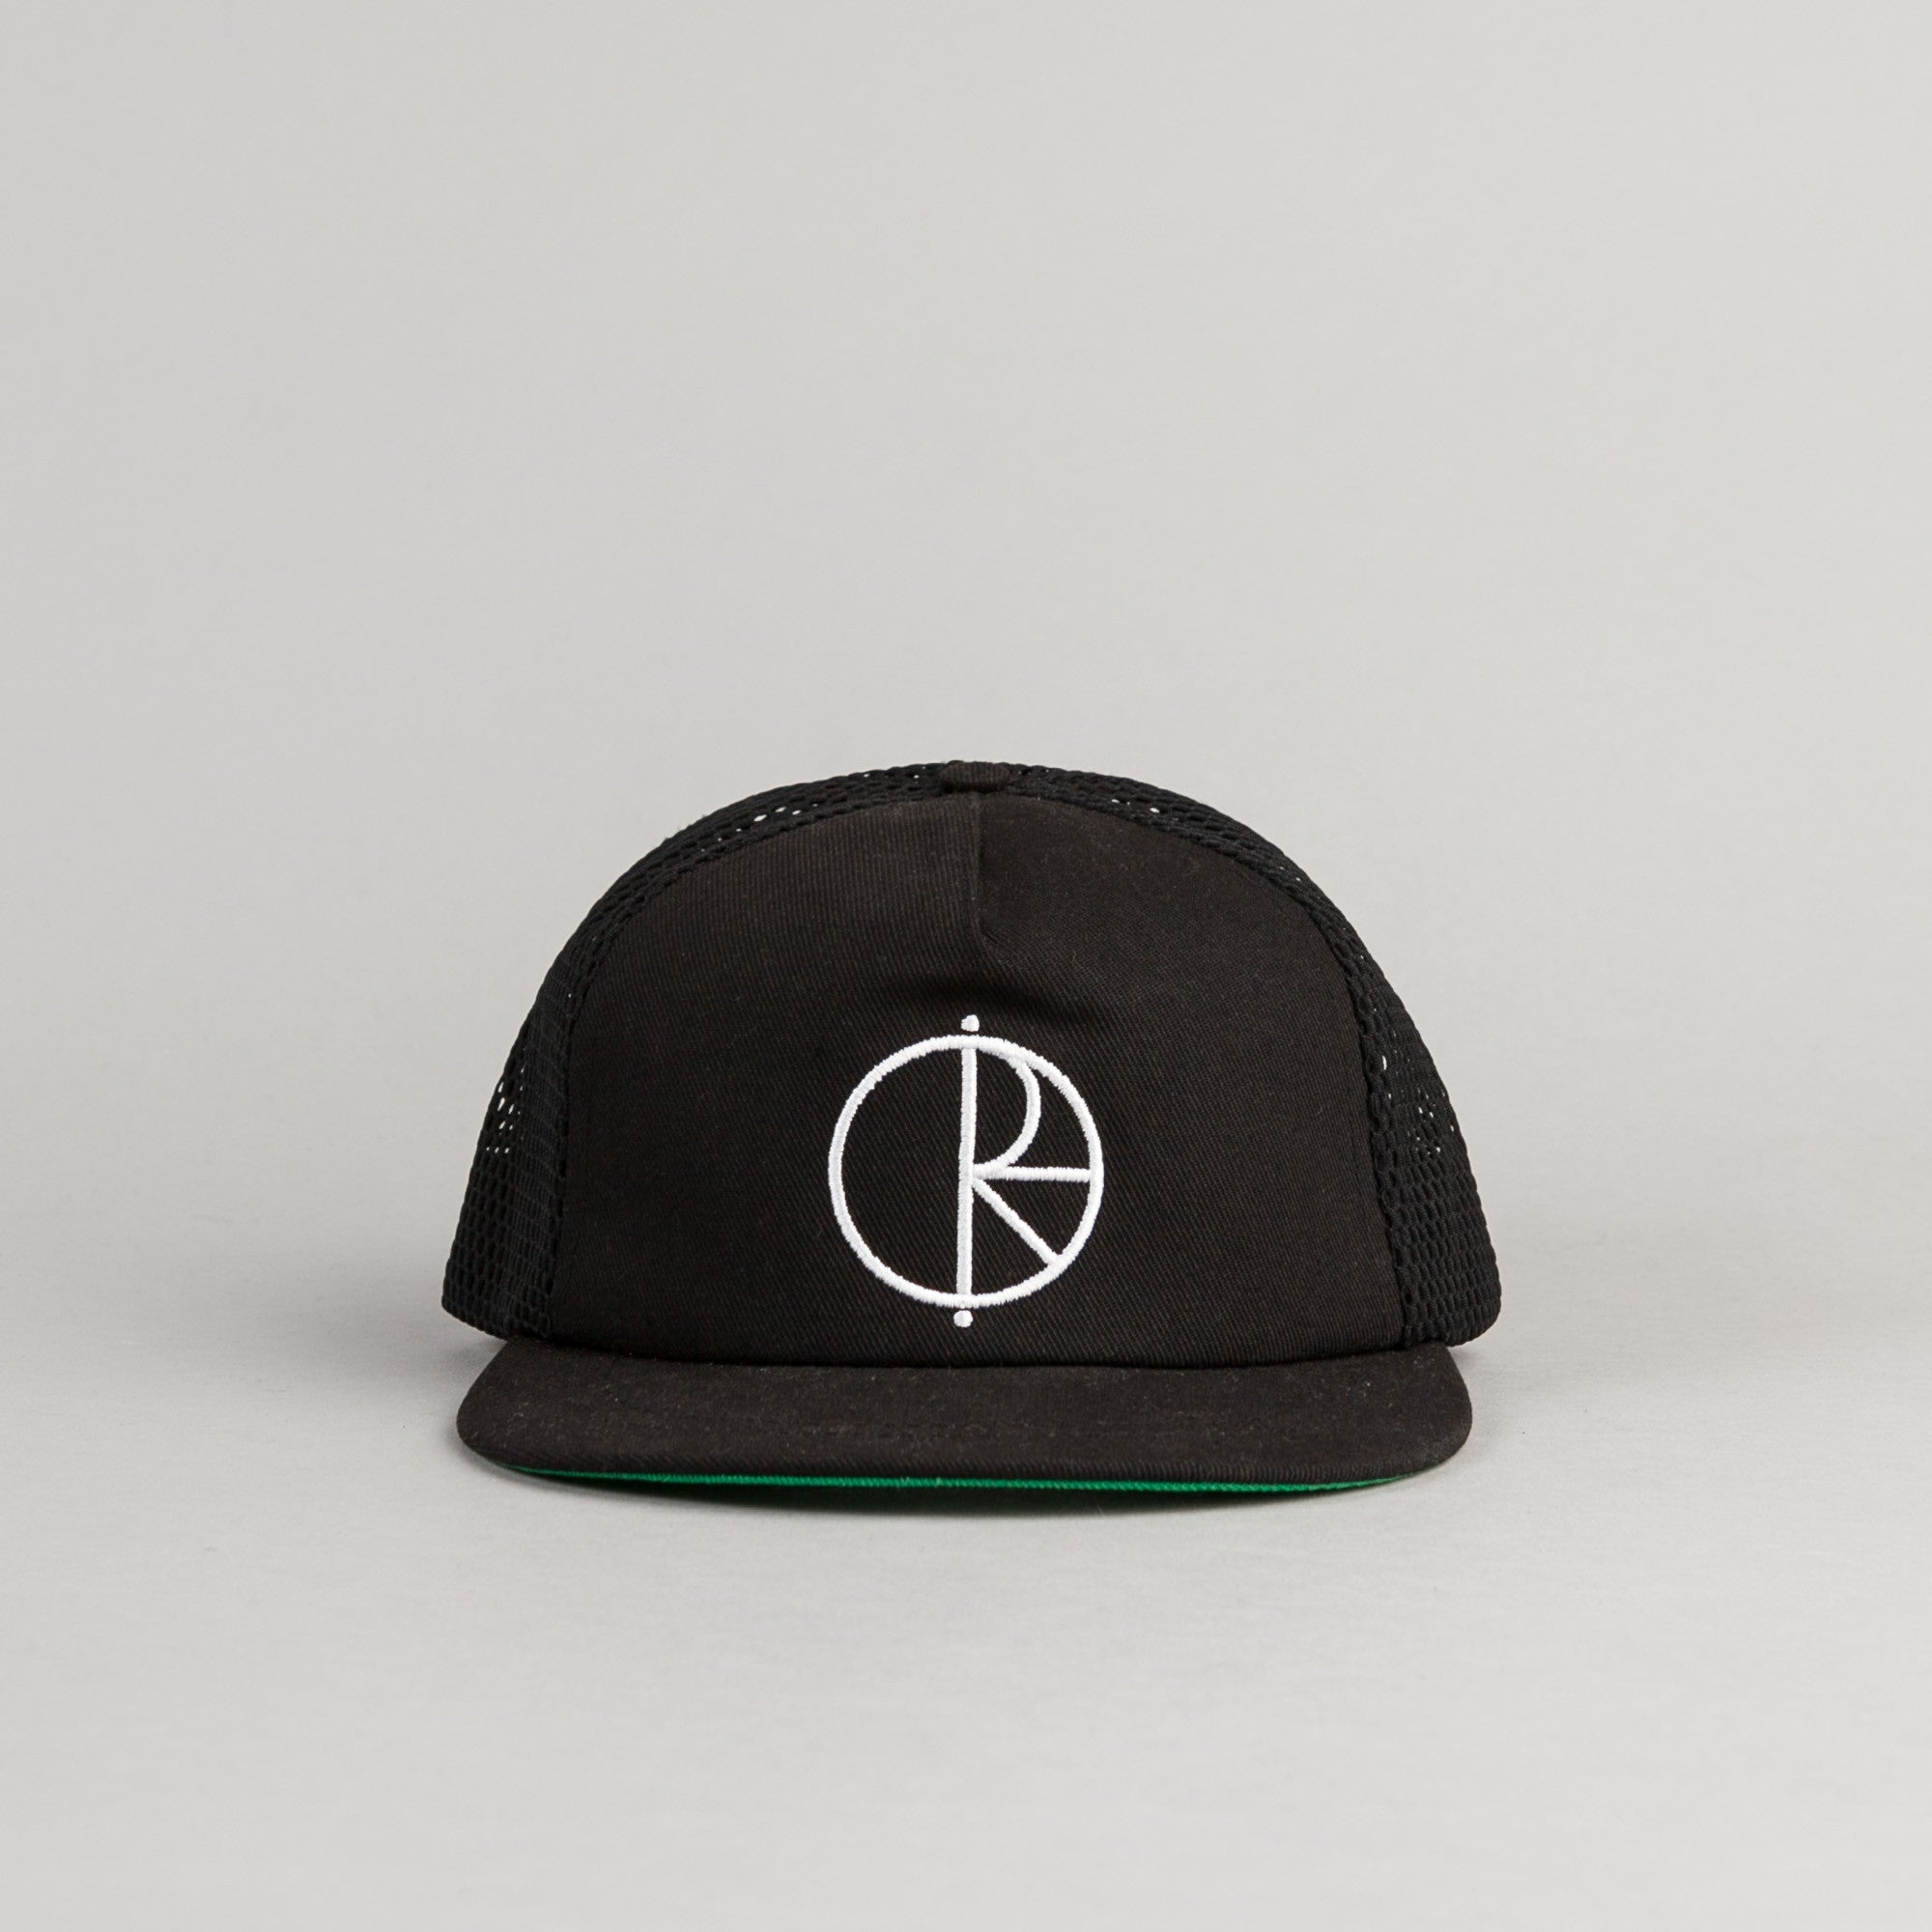 Polar Trucker Snapback Cap Black / Green Bottom Brim